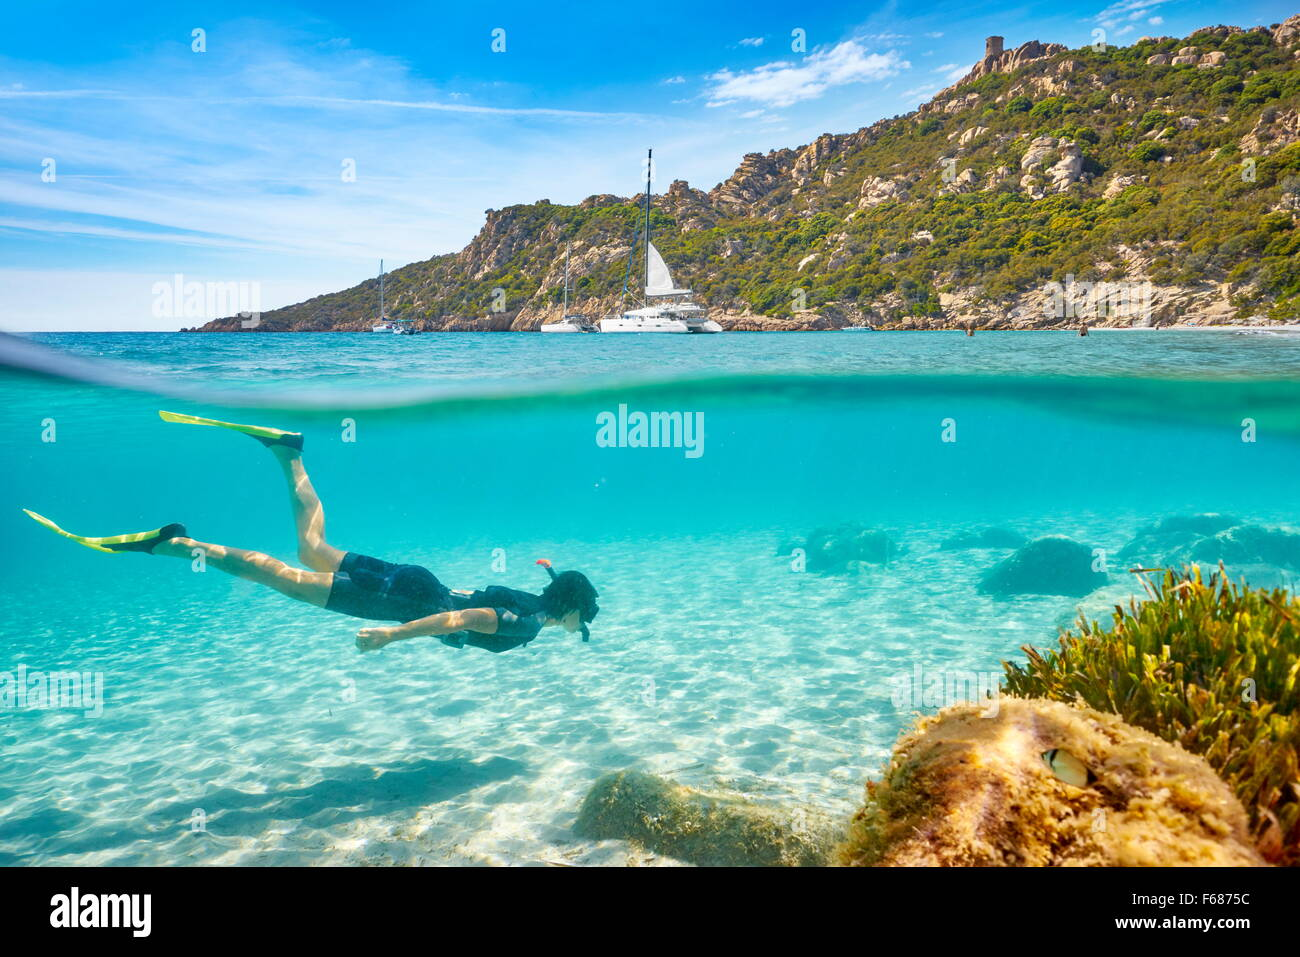 La plage de Roccapina, Corse, France Photo Stock